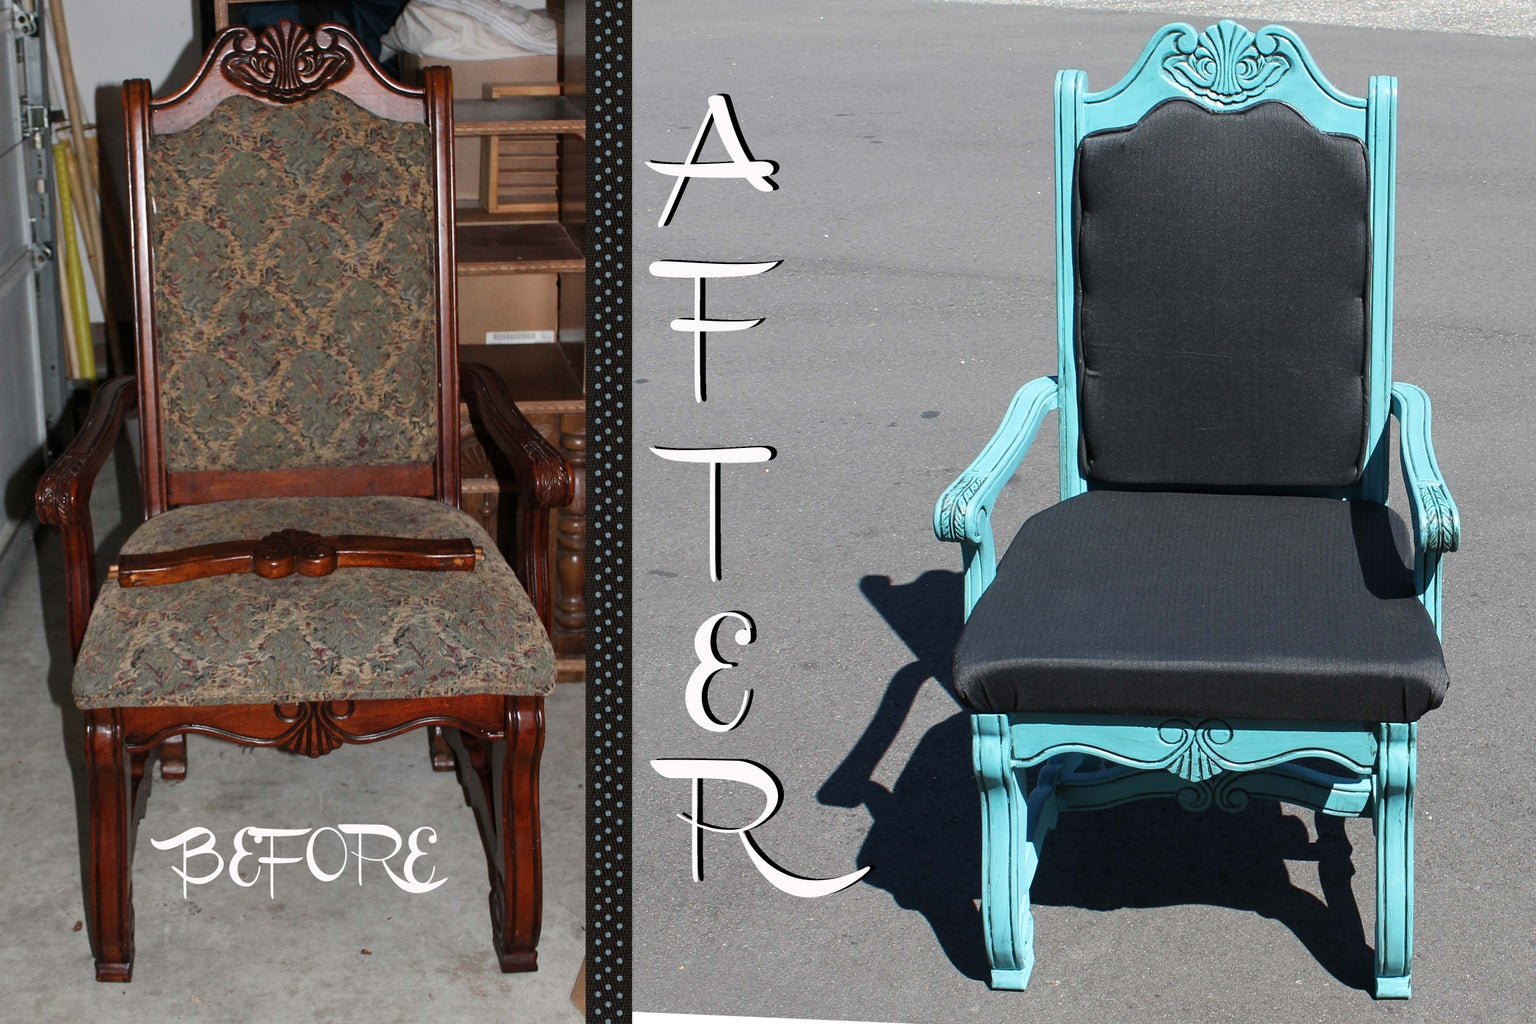 Vintage-style Queen Throne Chair Redo!